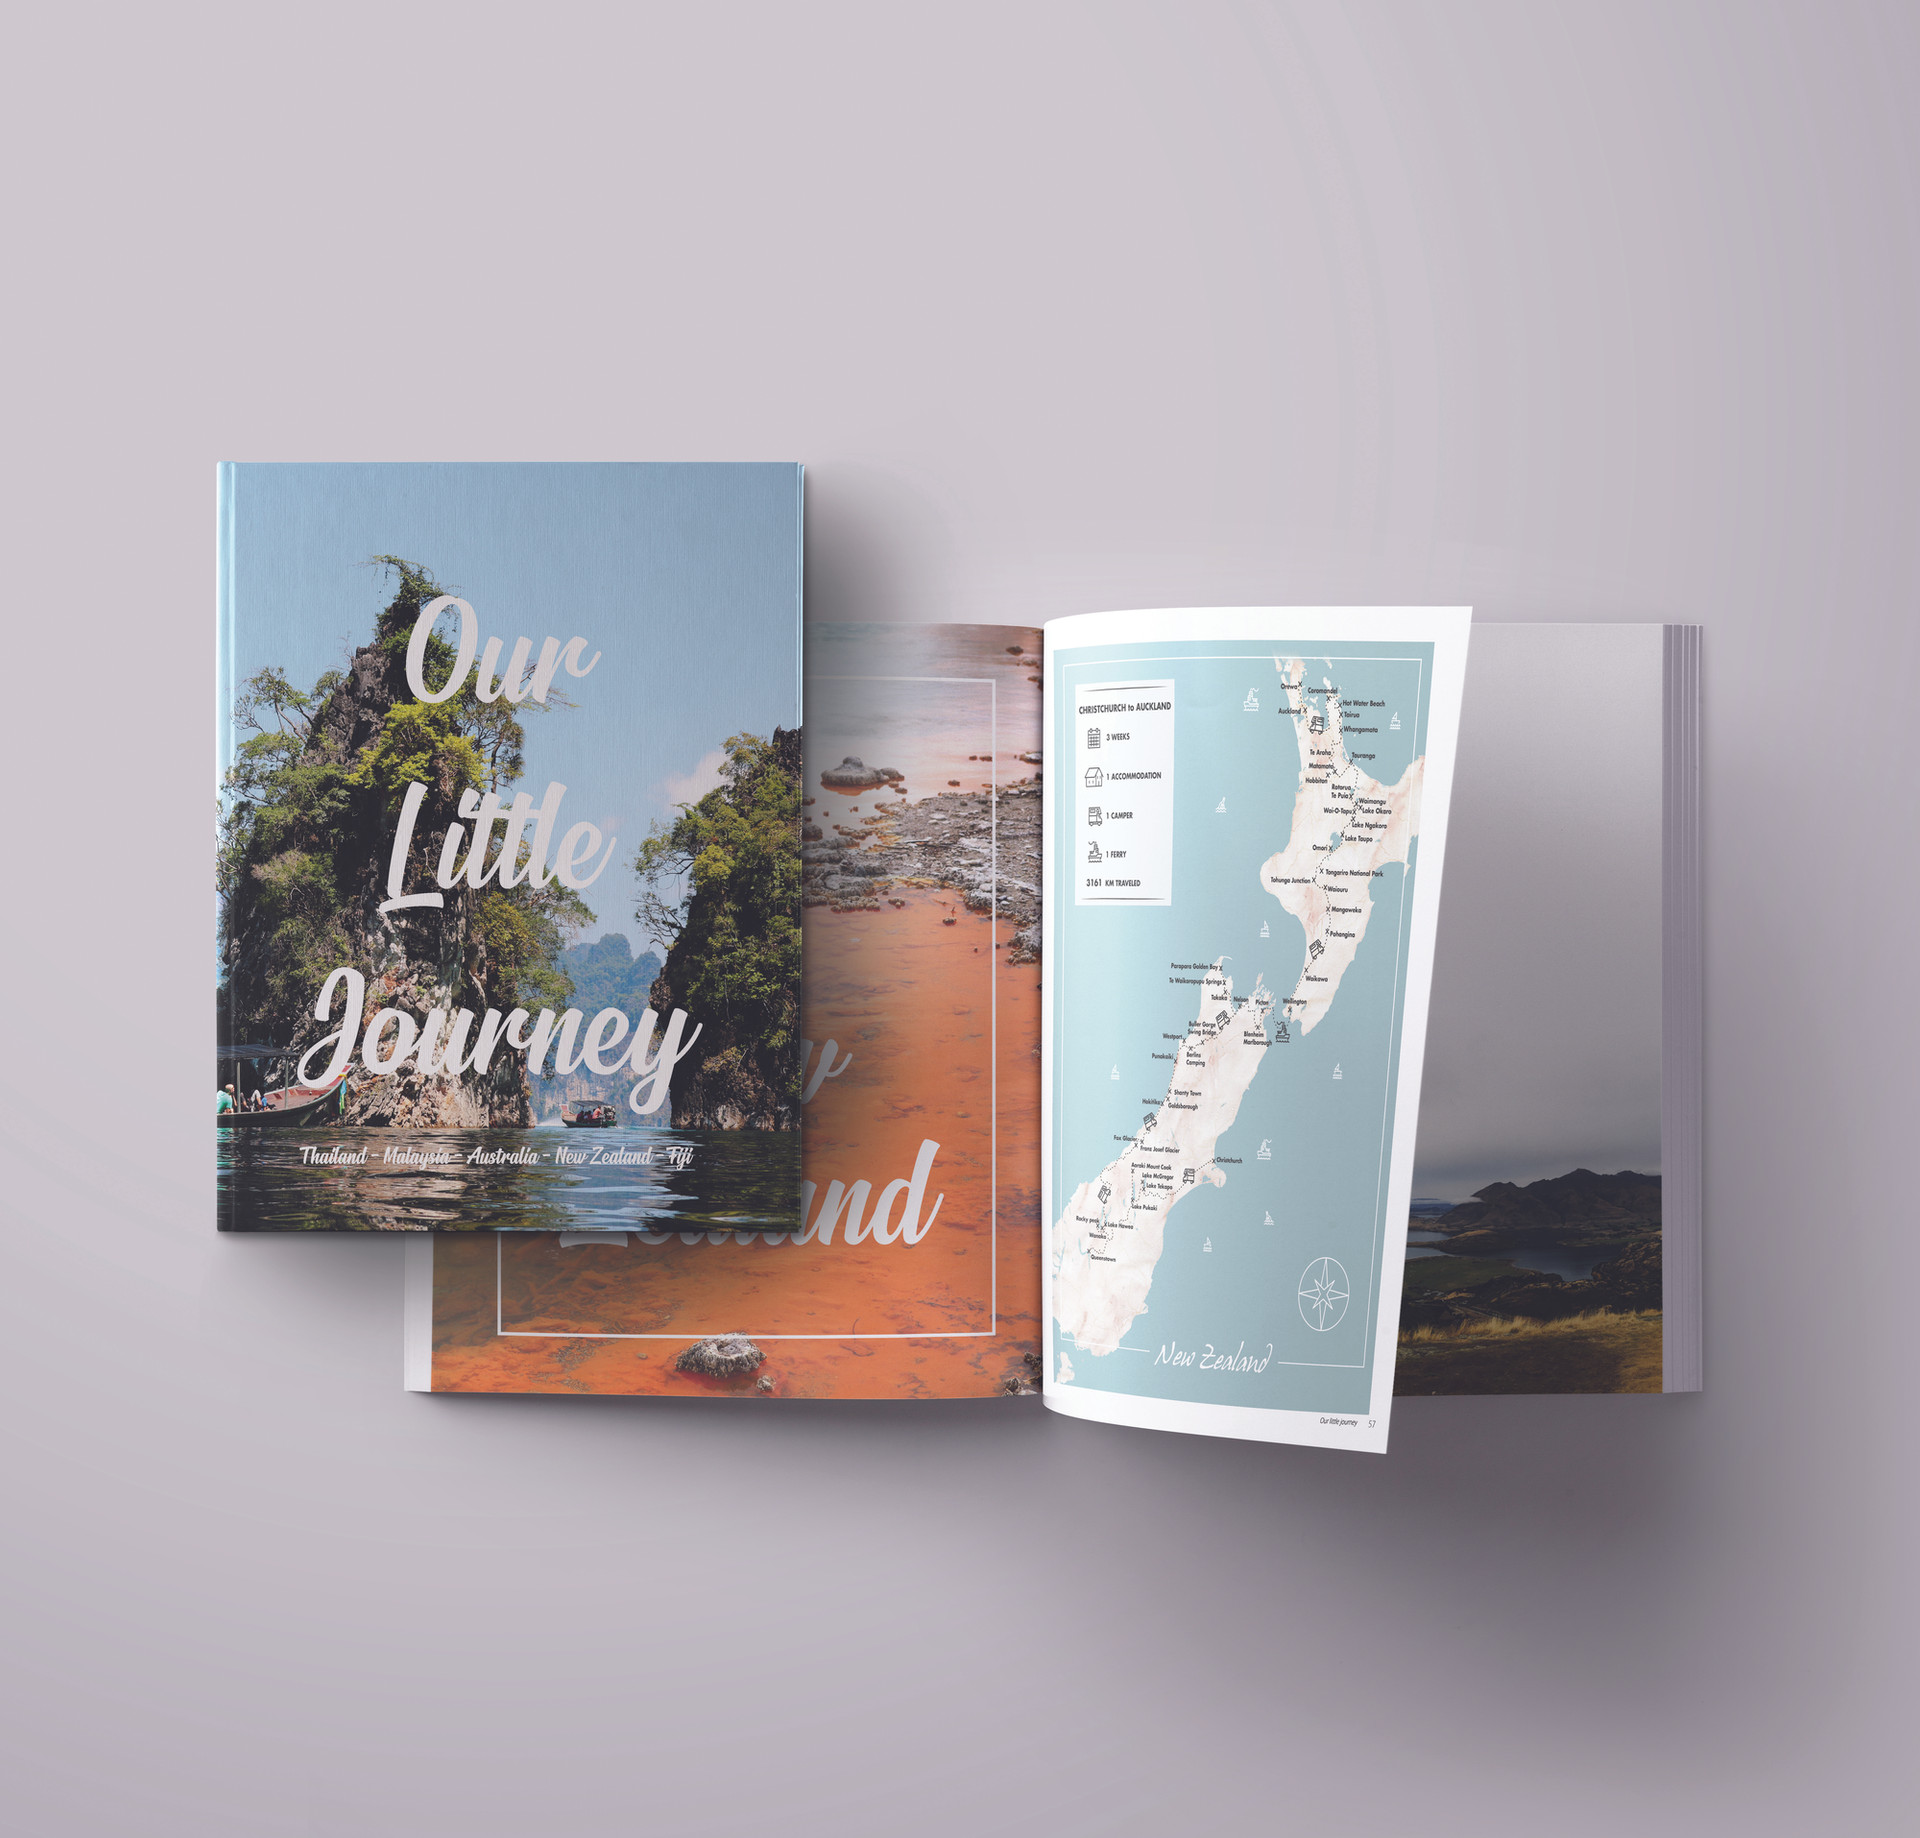 our little journey book